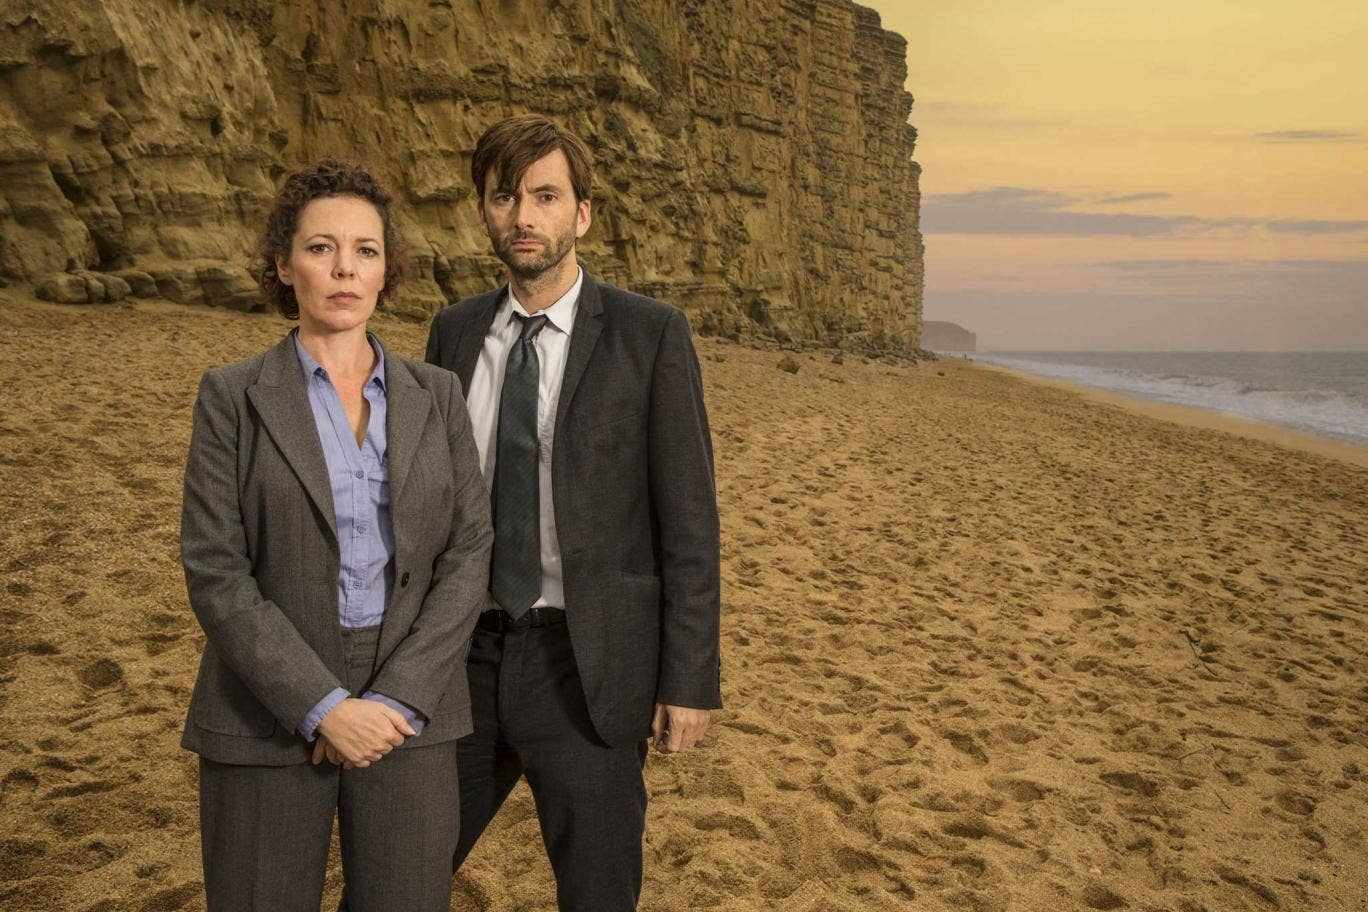 Colman in her new series, Broadchurch, with David Tennant